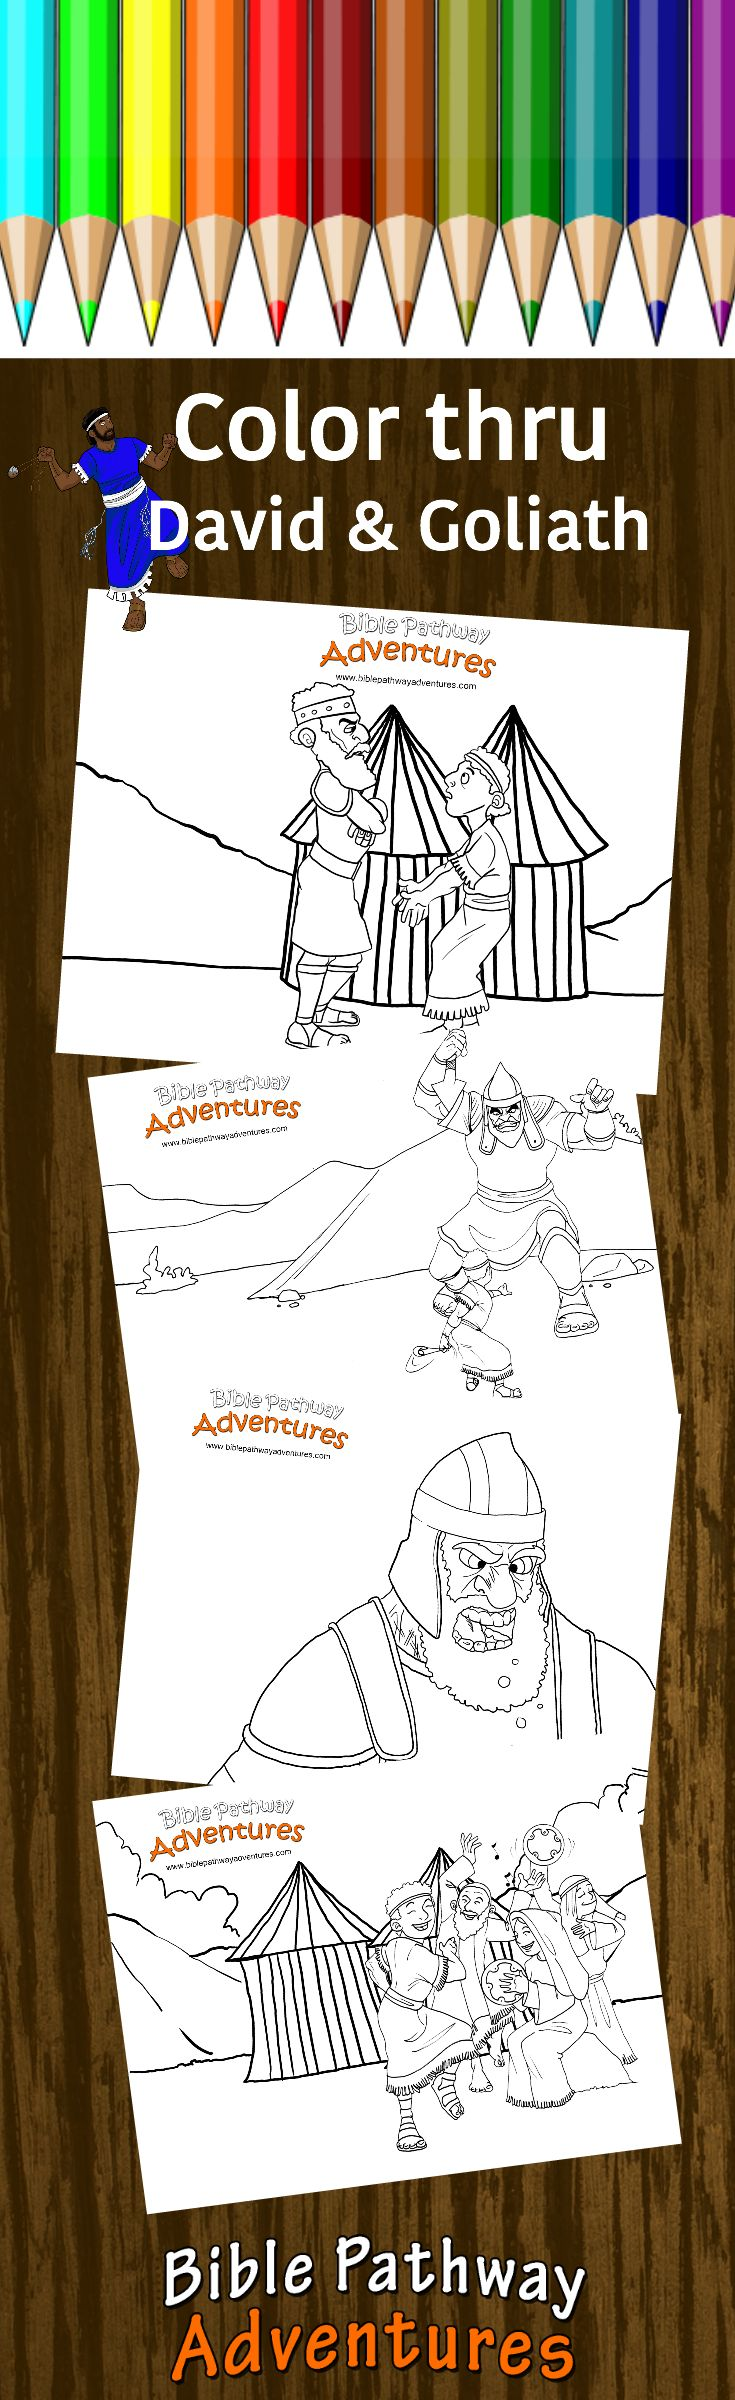 68 best david and goliath images on pinterest bible stories